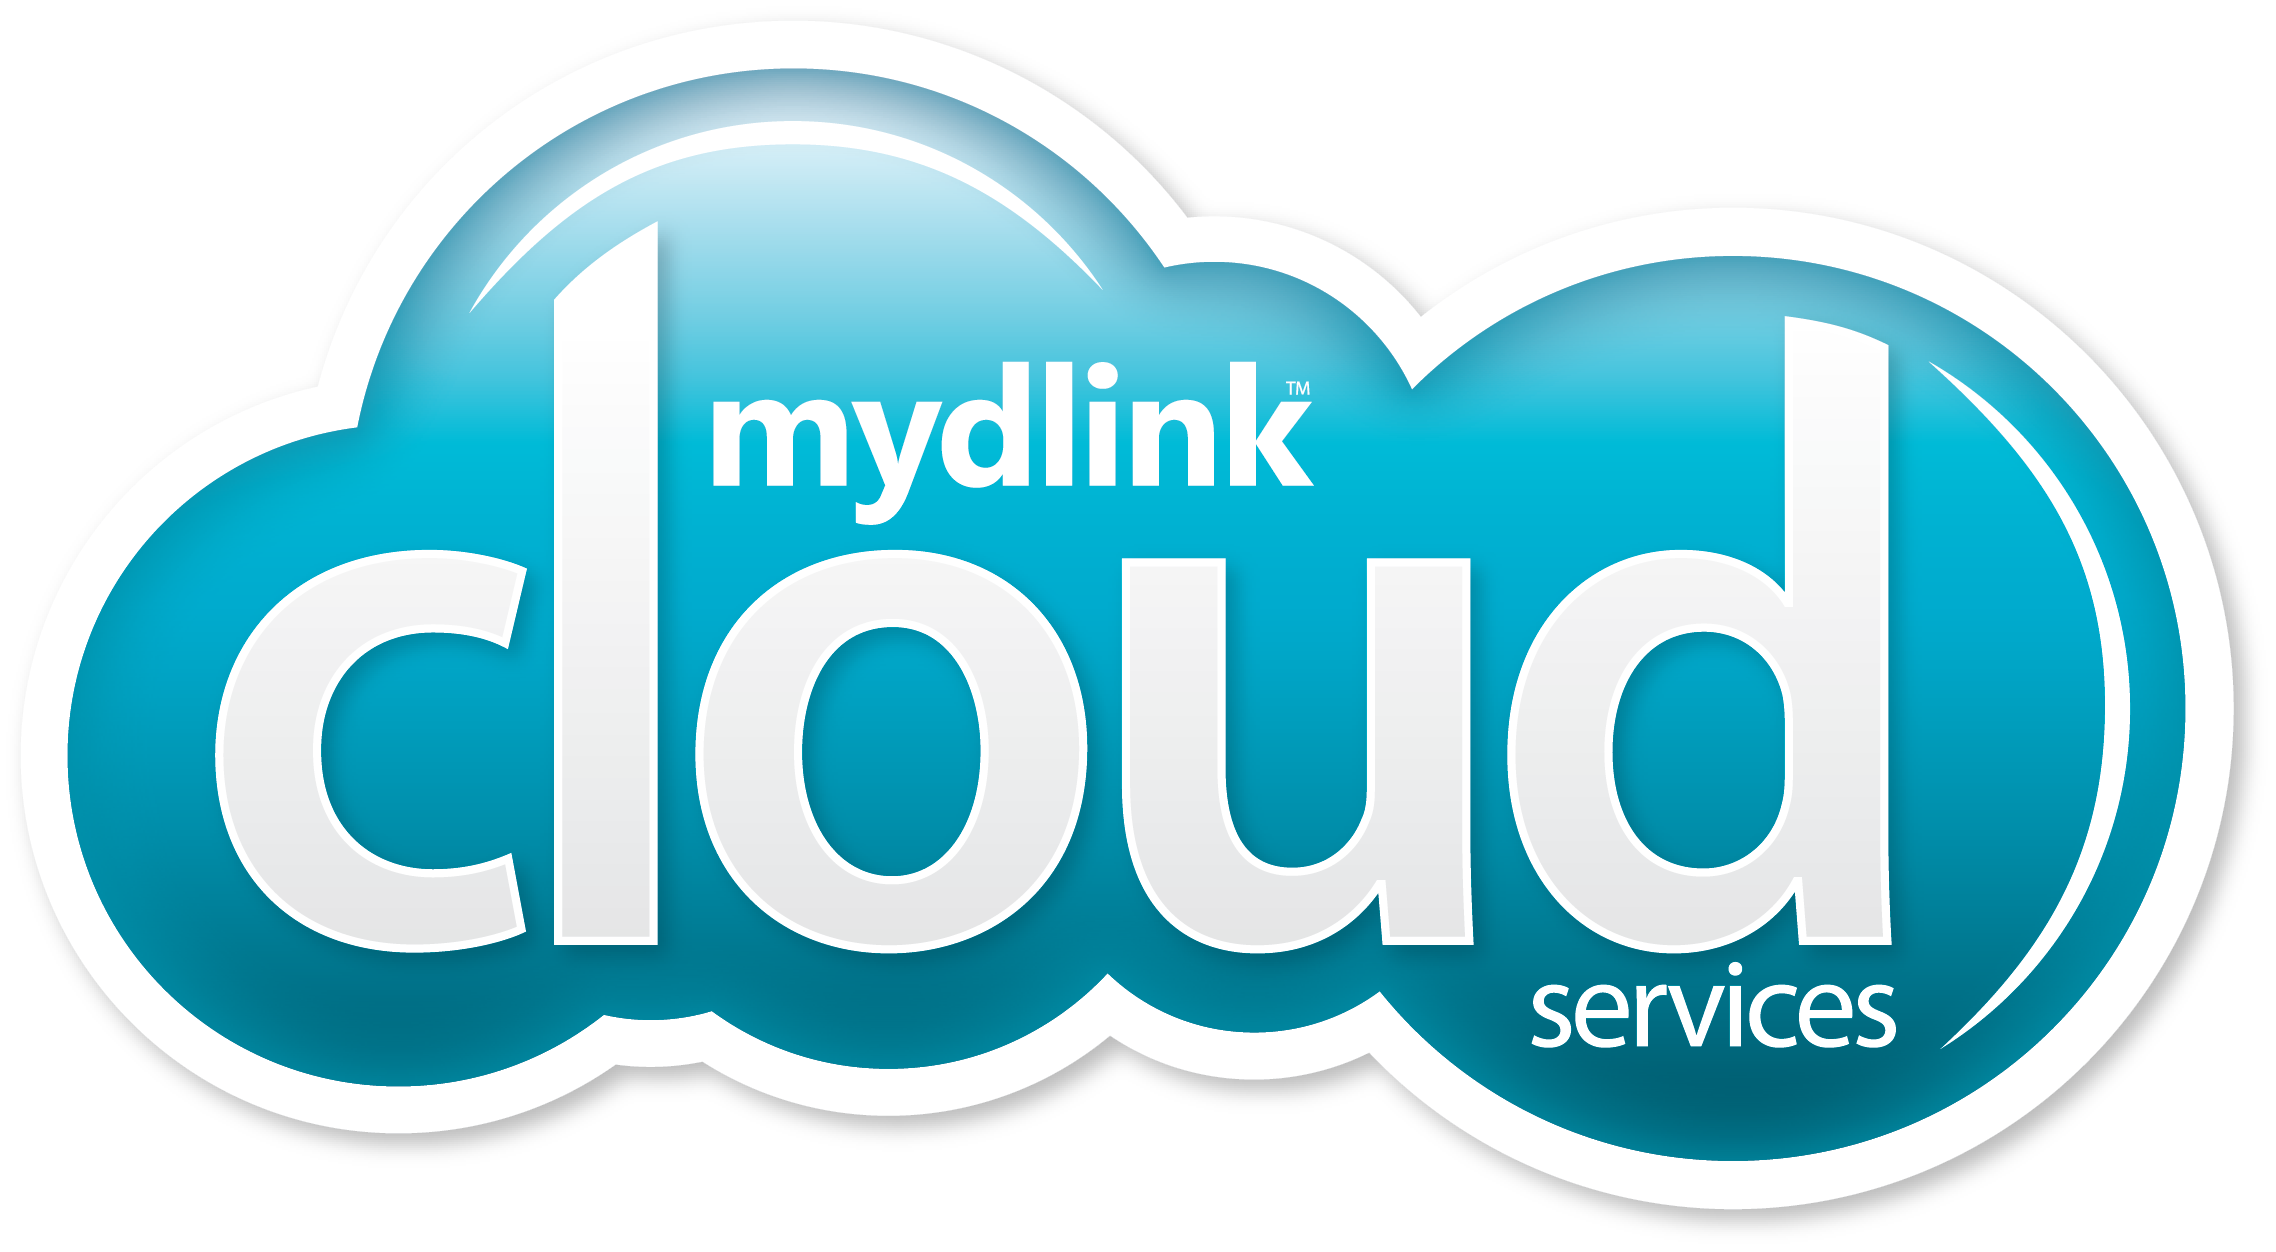 Is mydlink cloud service free uk